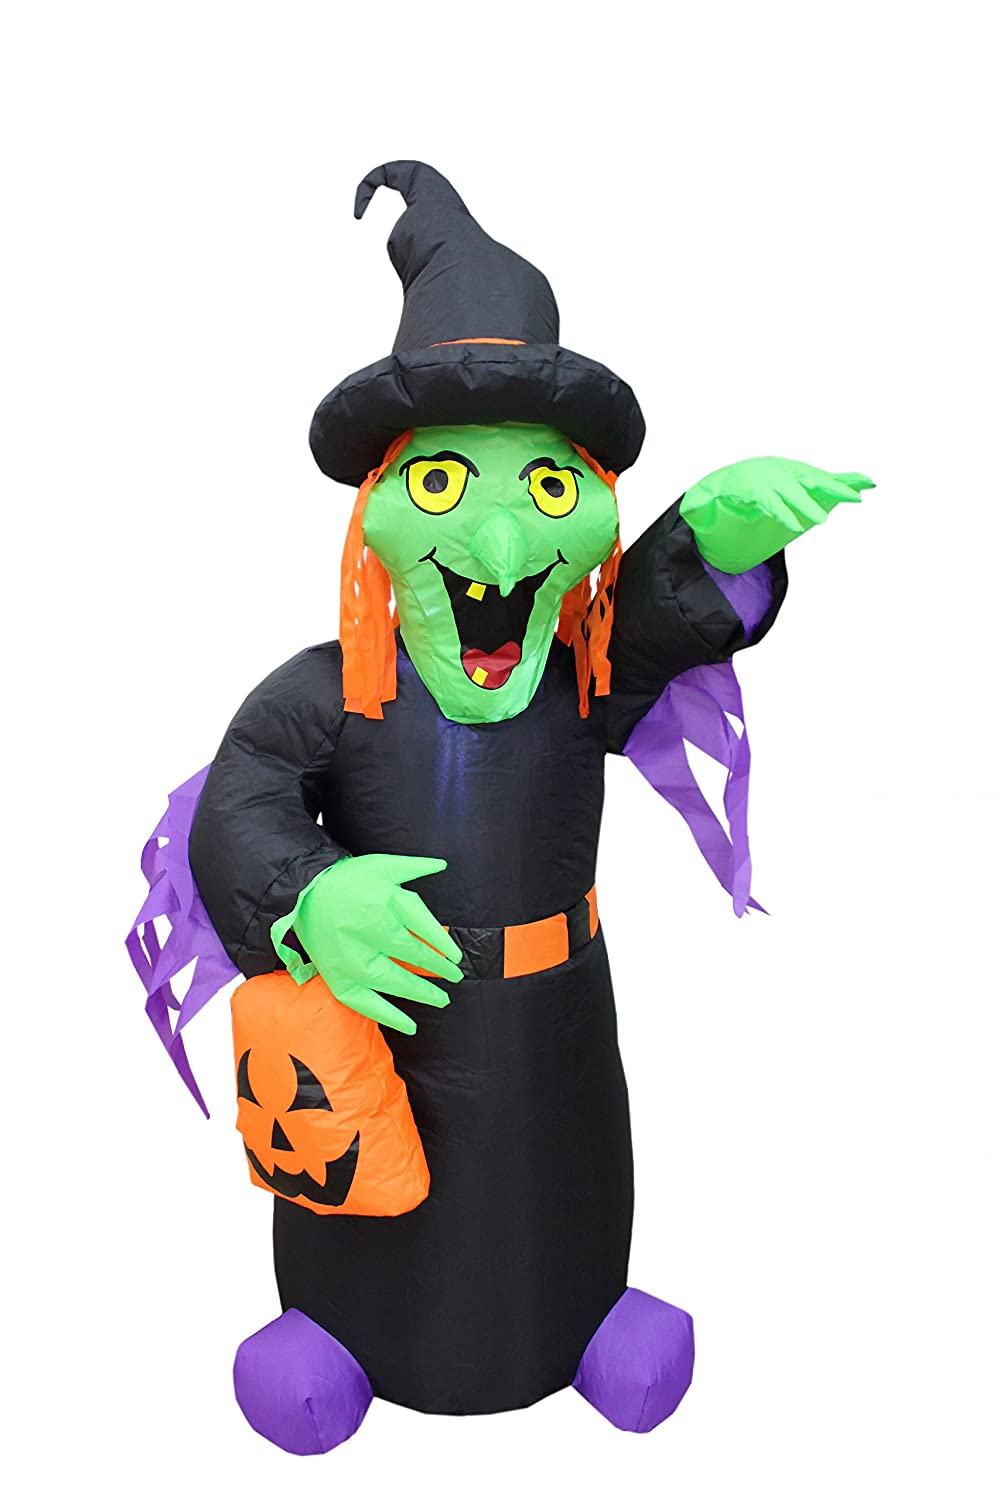 BZB Goods 4 Foot Tall Halloween Inflatable Witch with Pumpkin Bag LED Lights Decor Outdoor Indoor Holiday Decorations, Blow up Lighted Yard Decor, Lawn Inflatables Home Family Outside